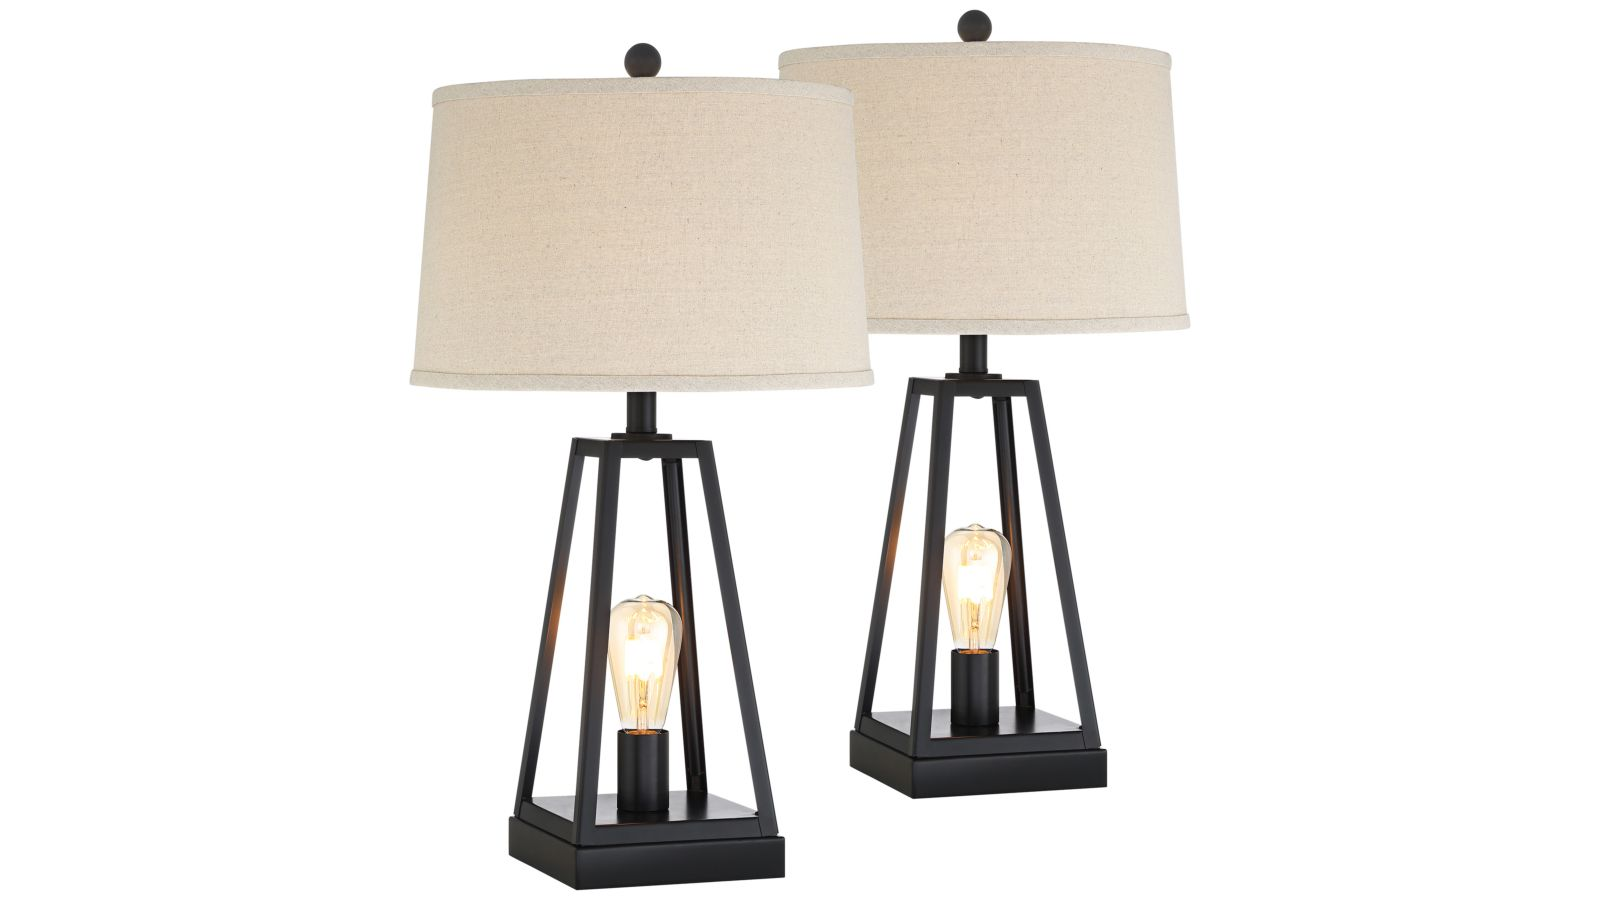 Kacey Set of 2 USB Table Lamps with Night Lights